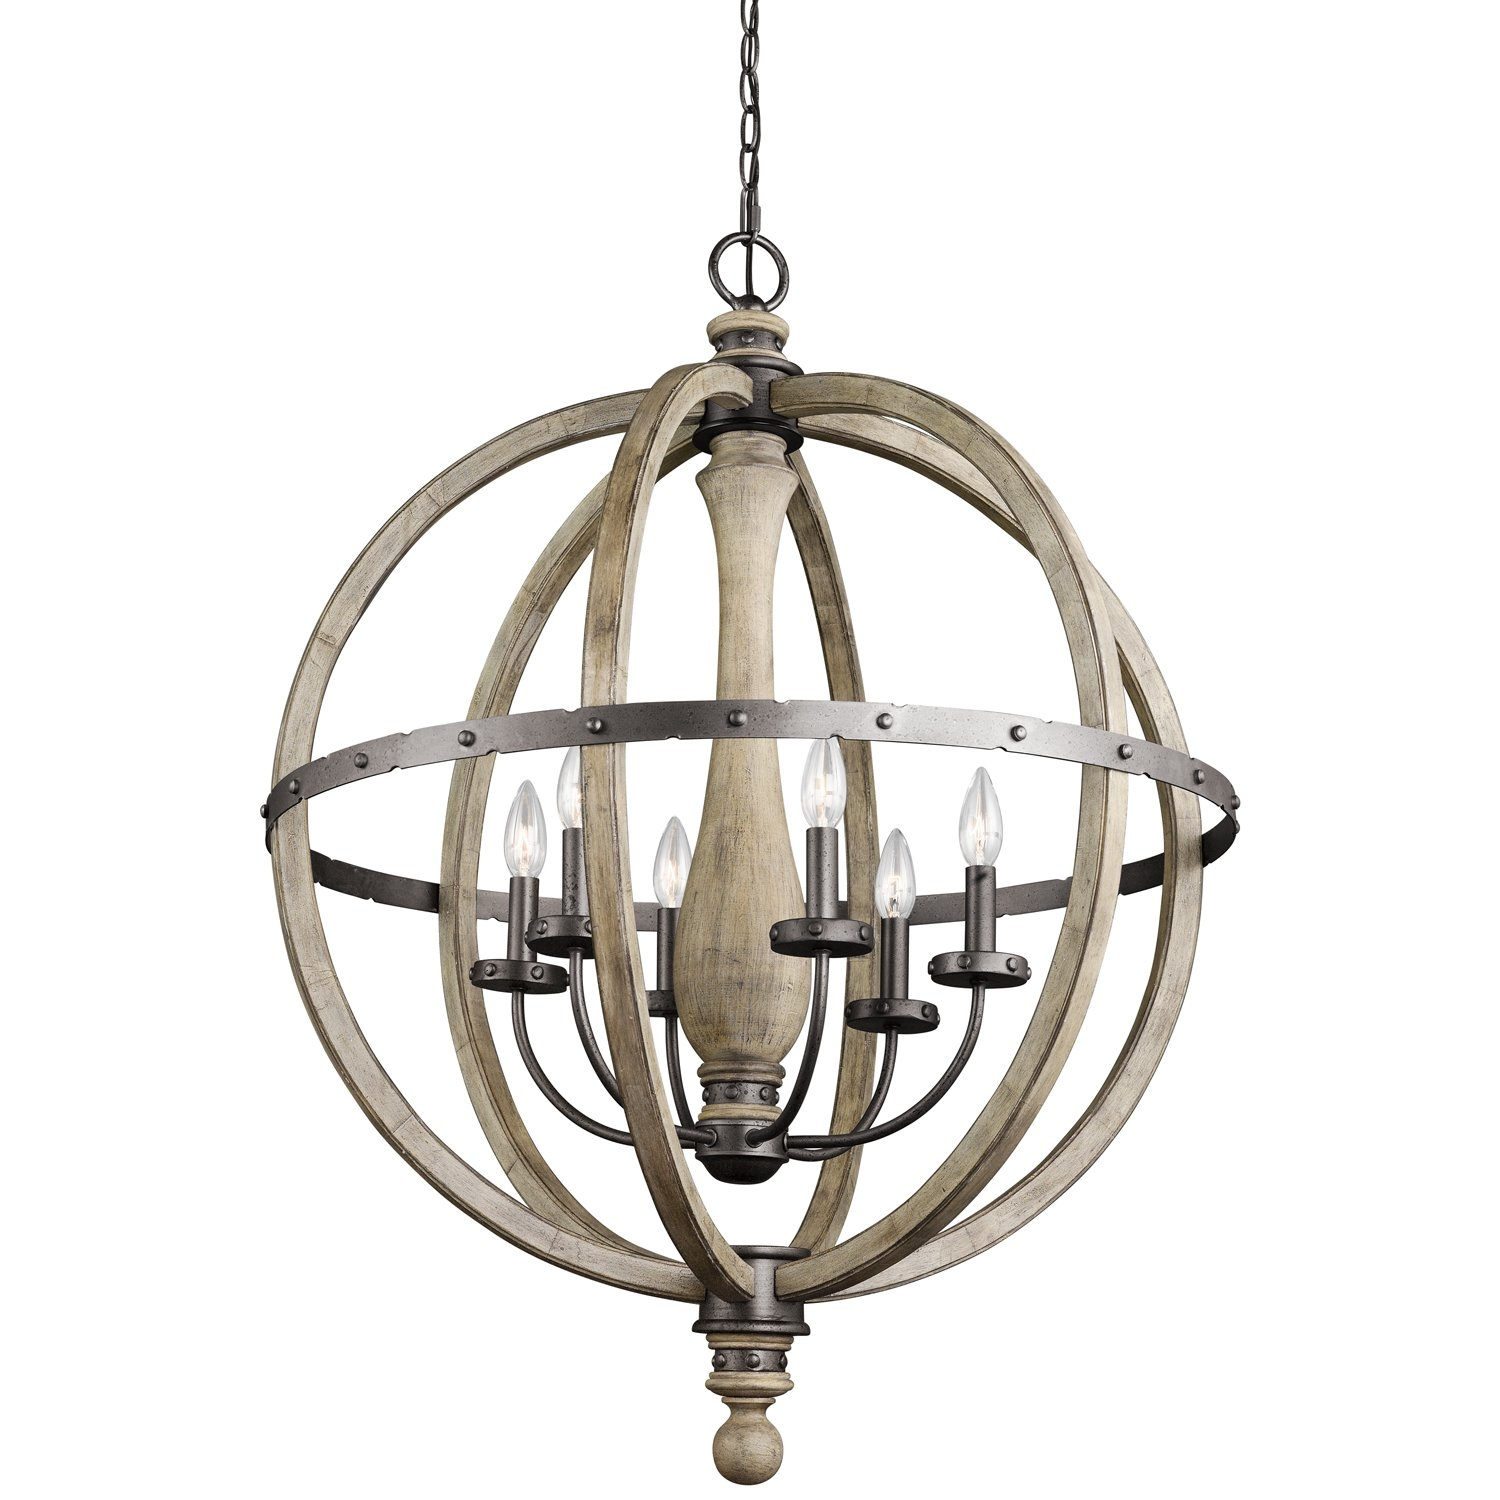 Kichler Evan 6 Light Globe Pendant Reviews Wayfair With Chandelier Globe (Image 10 of 15)